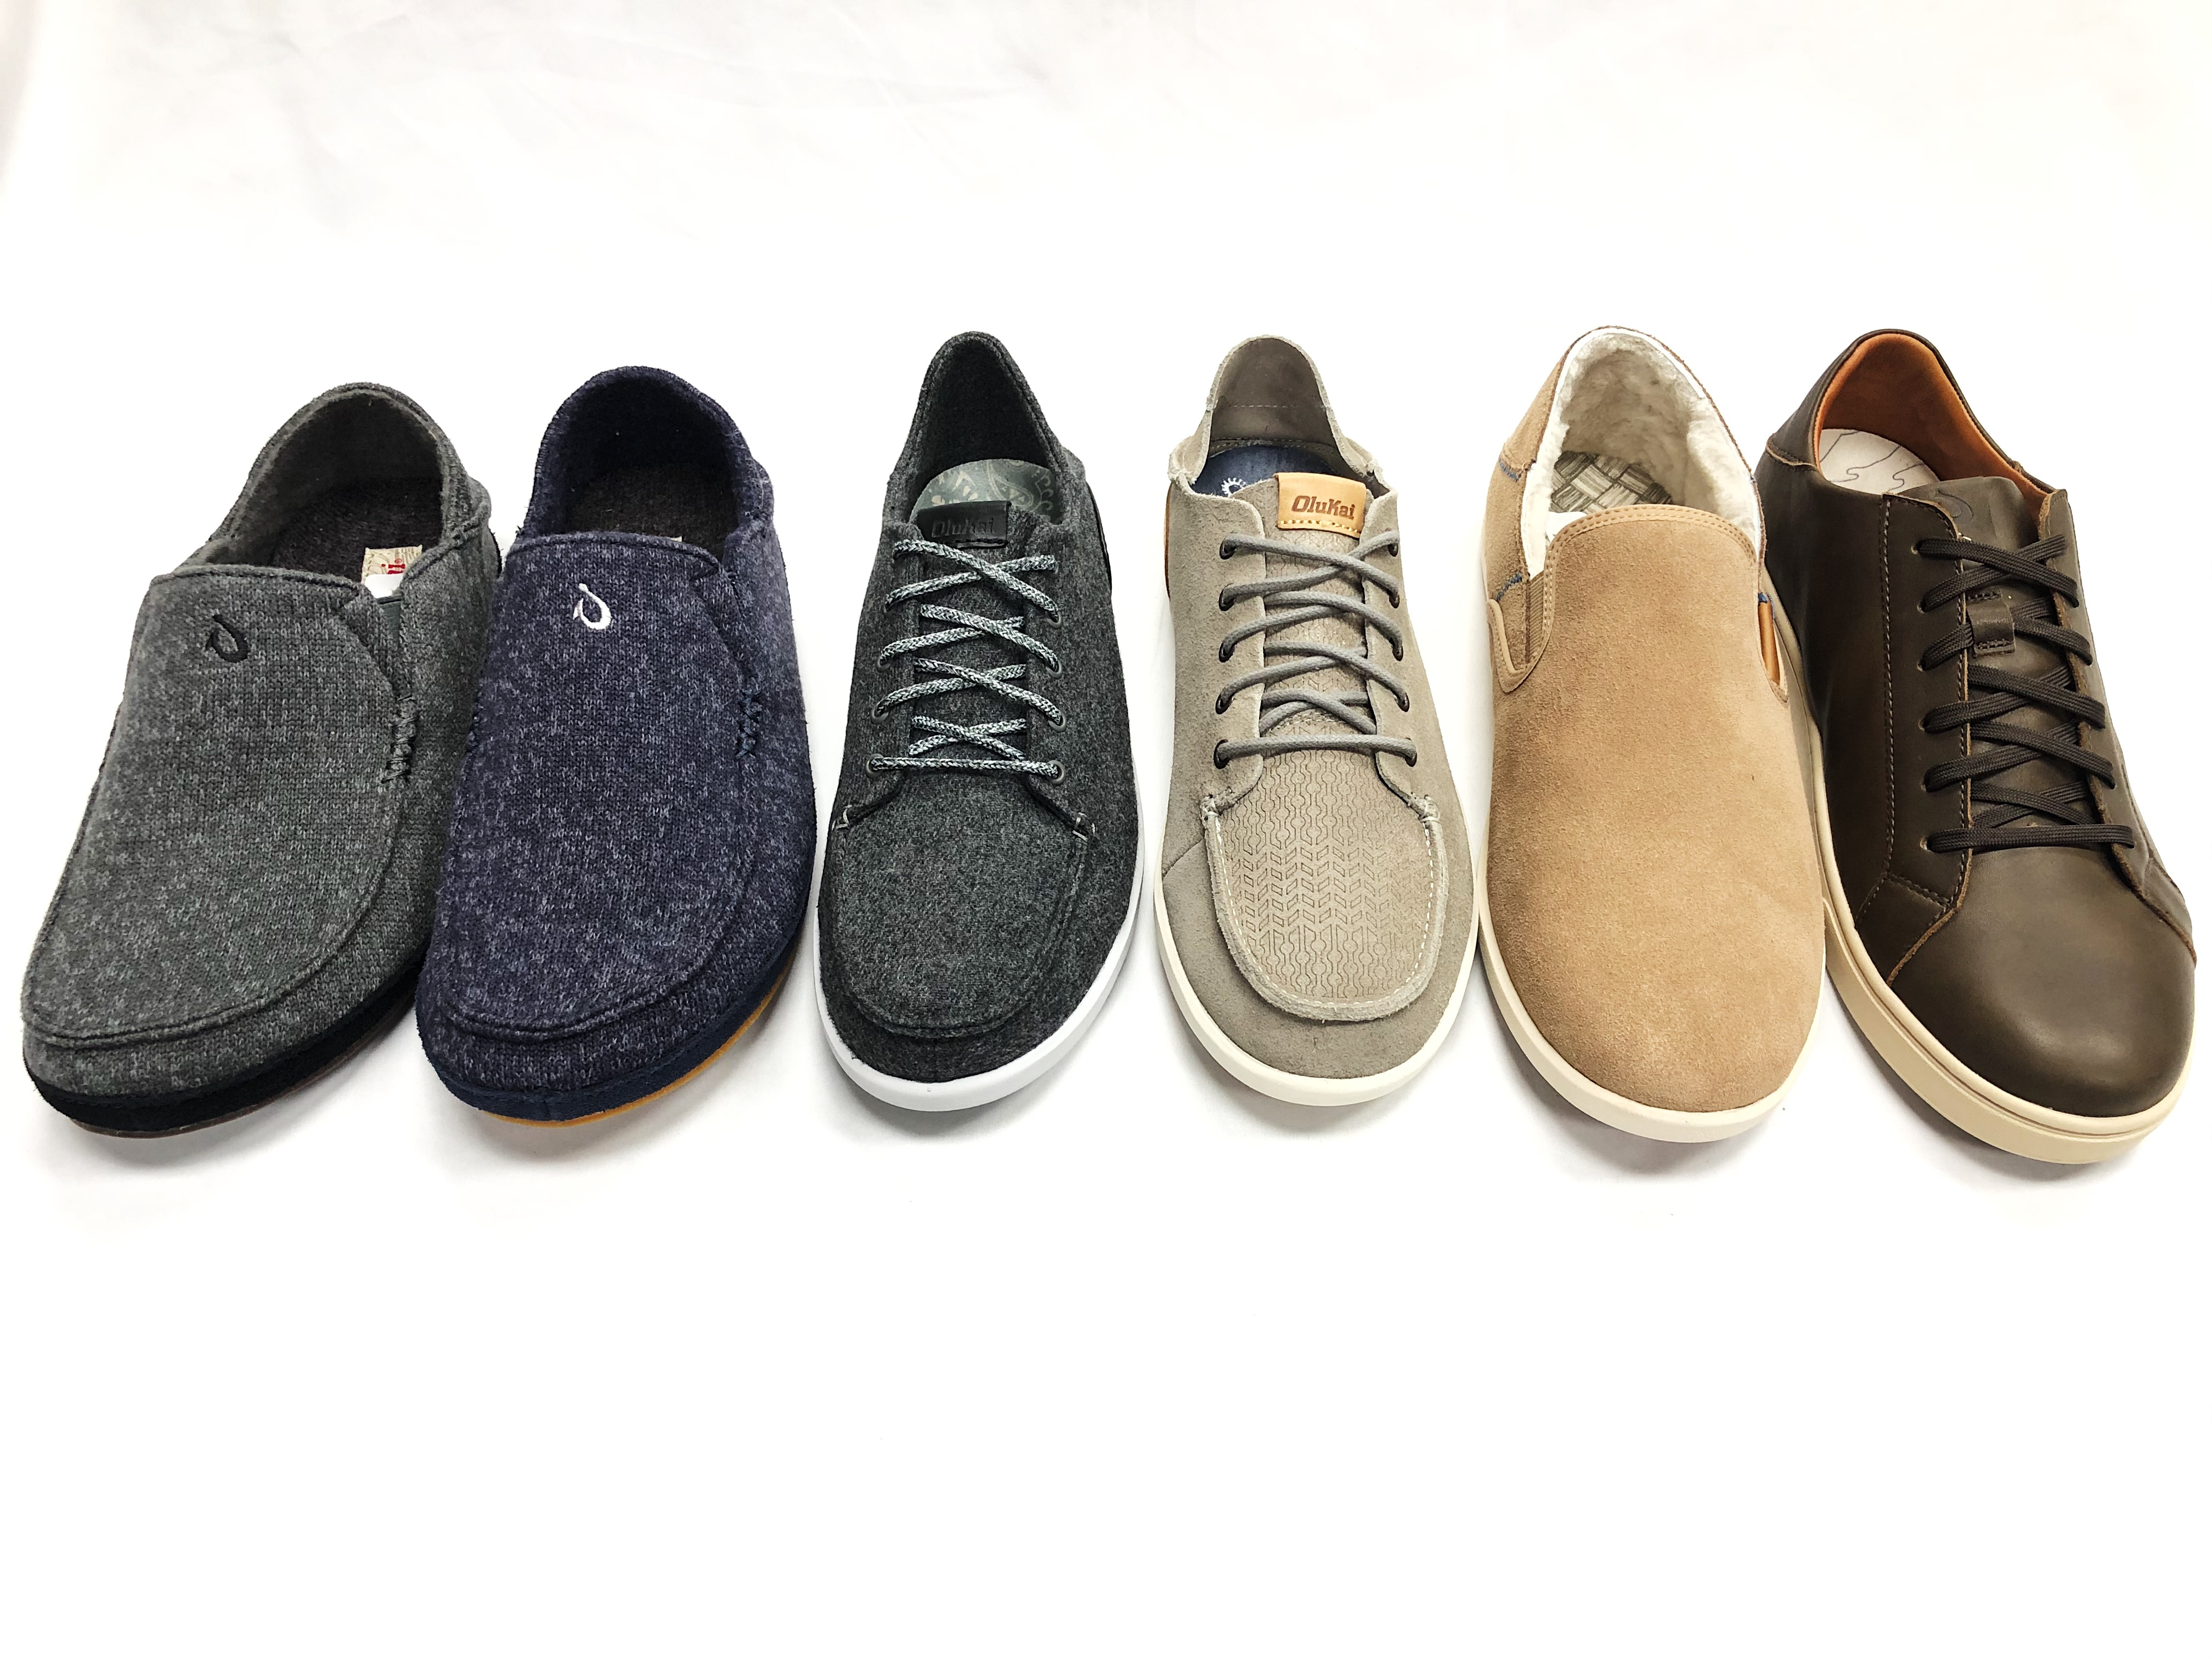 Olukai Slippers & Shoes